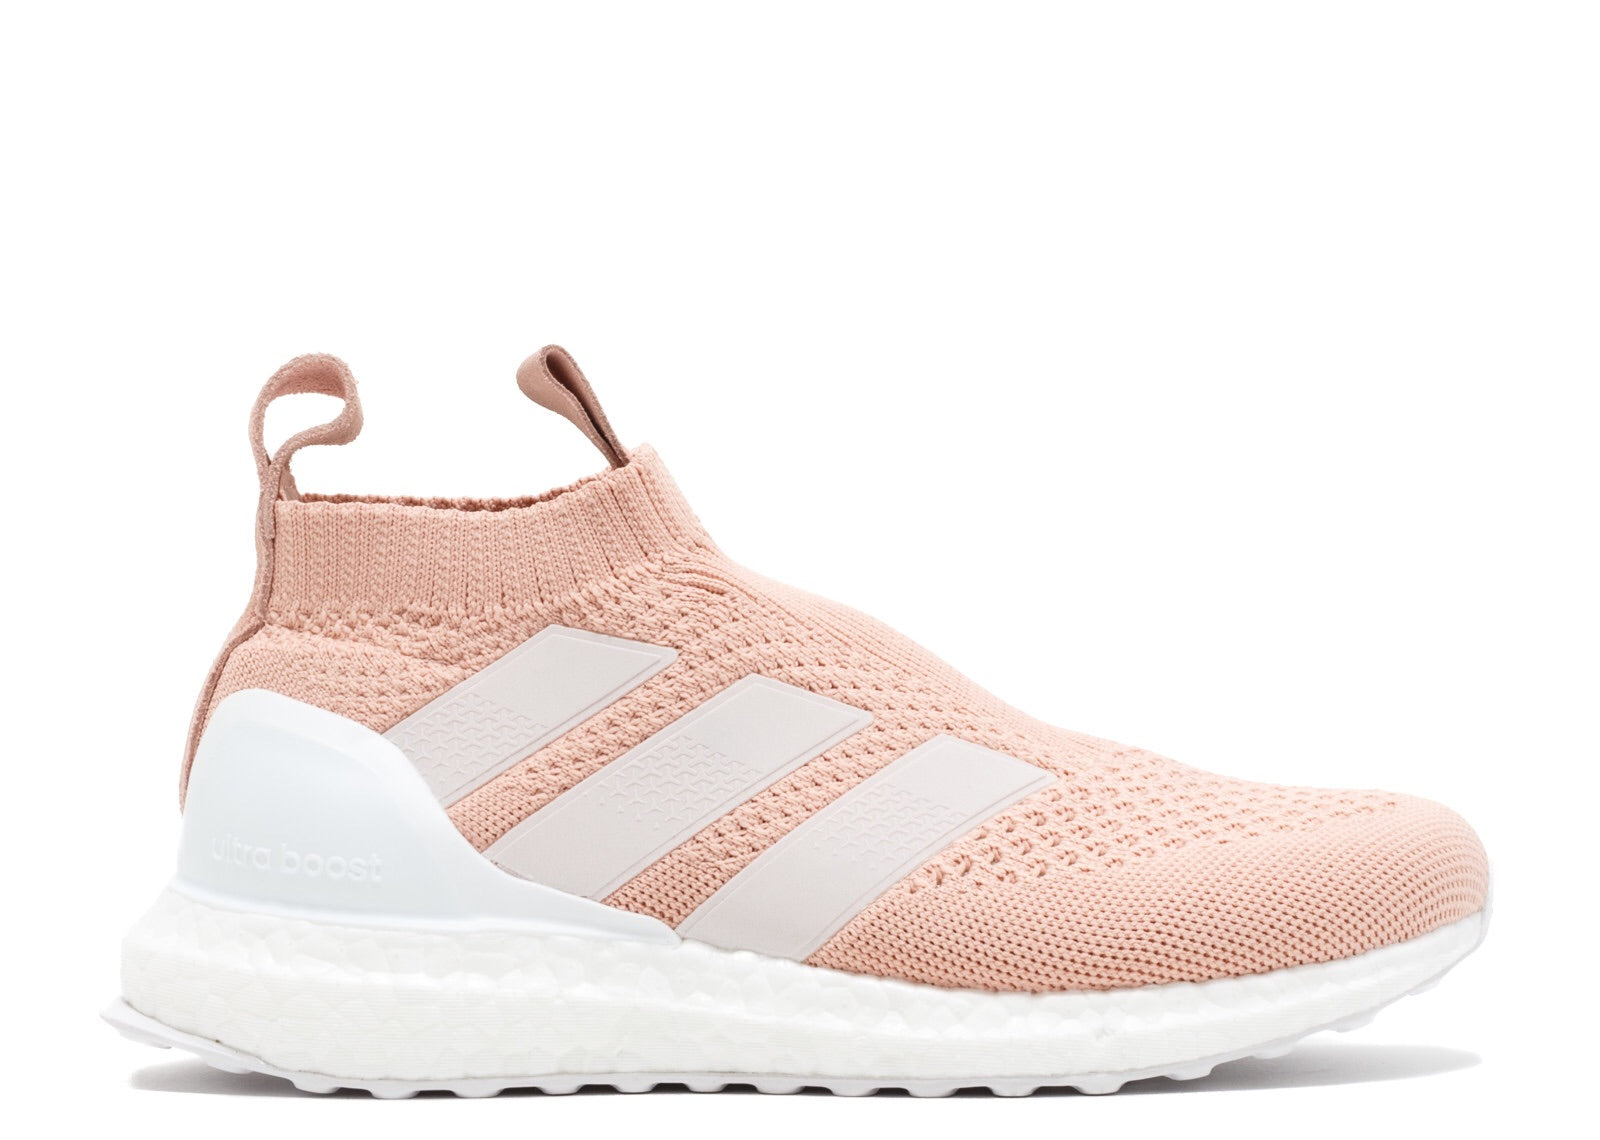 bc4114f8ebb Ace 16+ Kith Ultra Boost – Street Sole